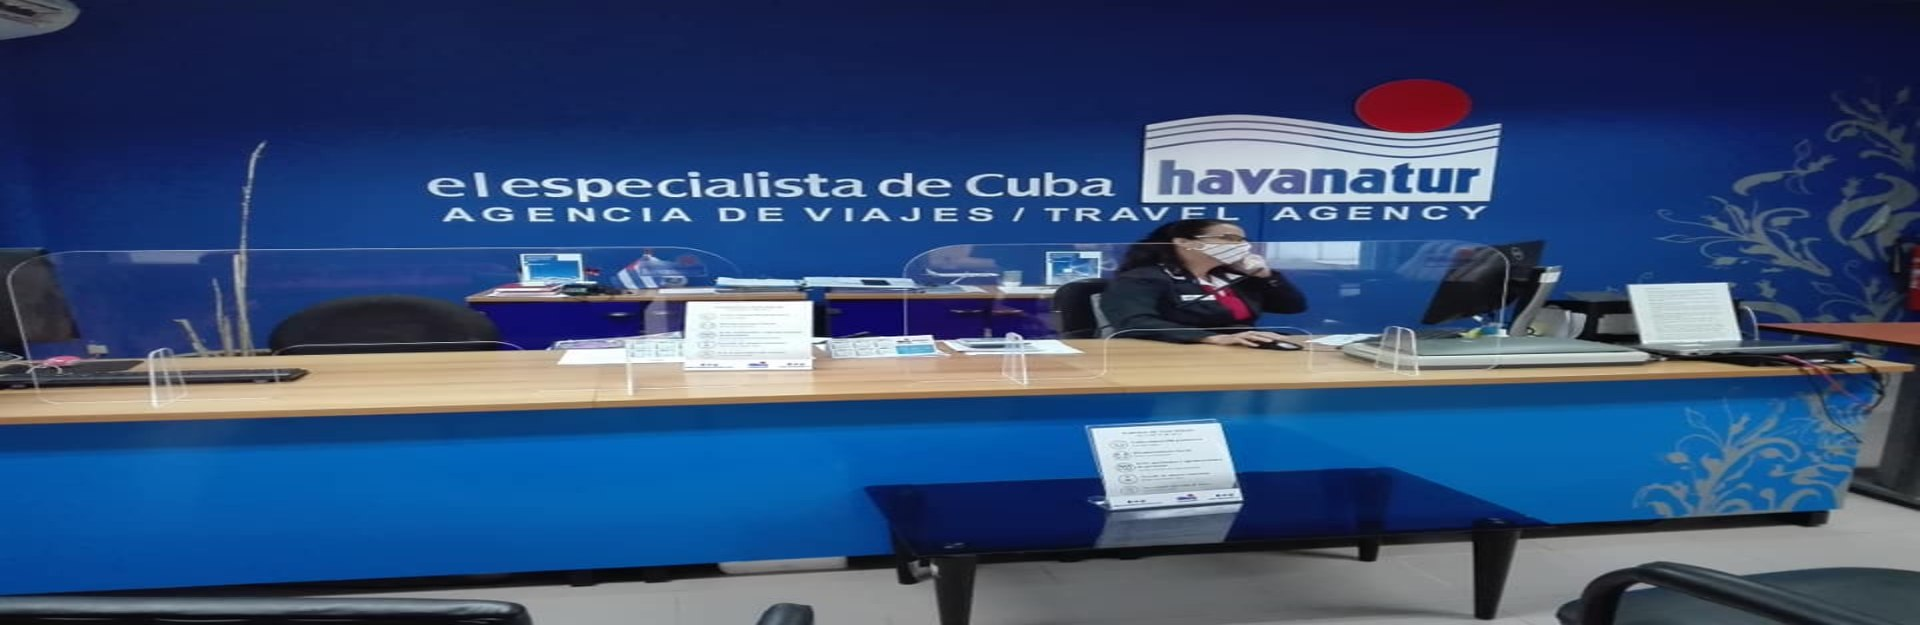 Havanatur Travel agency, Havana, Cuba Travel